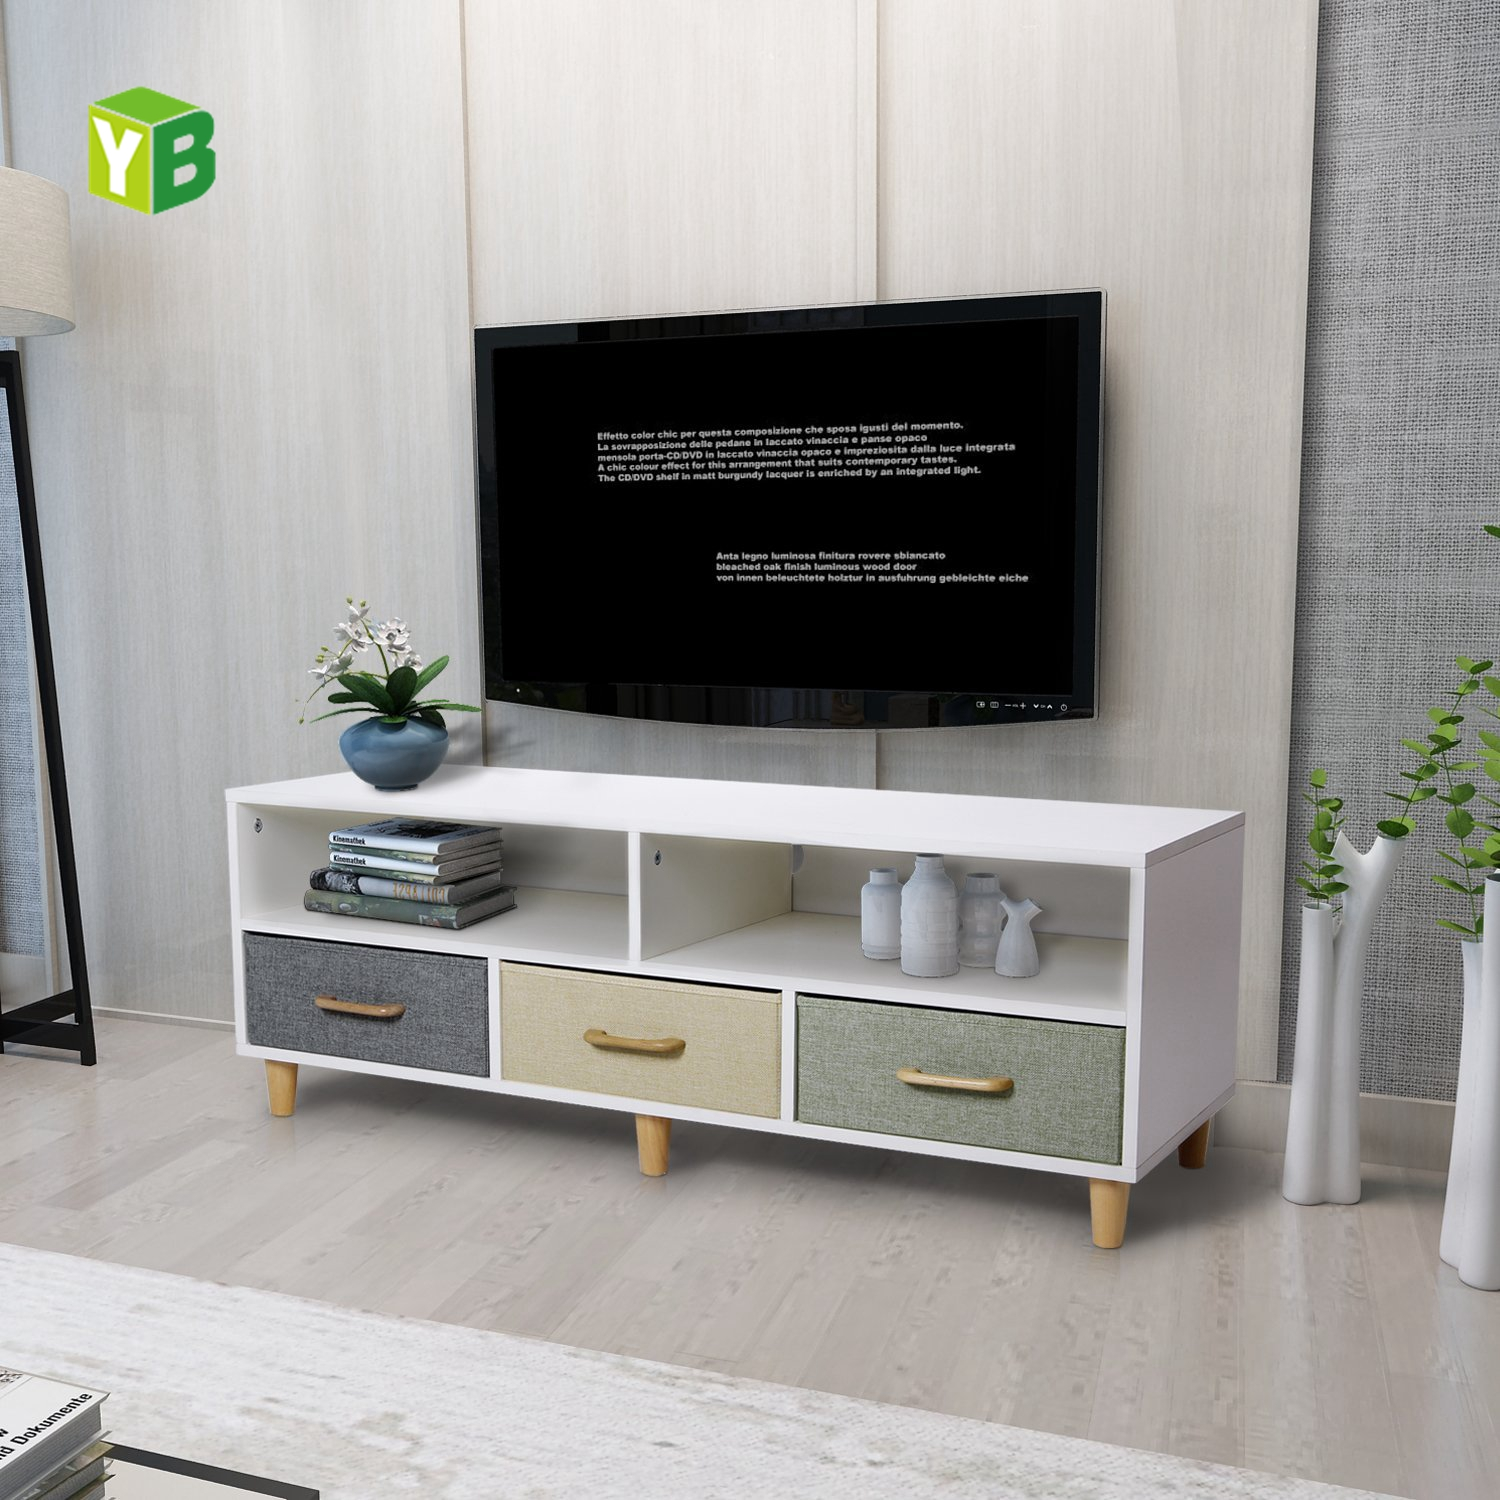 Yibang Cheap Beautiful Wood Tv Stand Furniture,Modern Small China New Tv  Wooden Cabinet - Buy Wood Tv Stand,Beautiful Tv Stand,Wood Tv Stand Product  ...